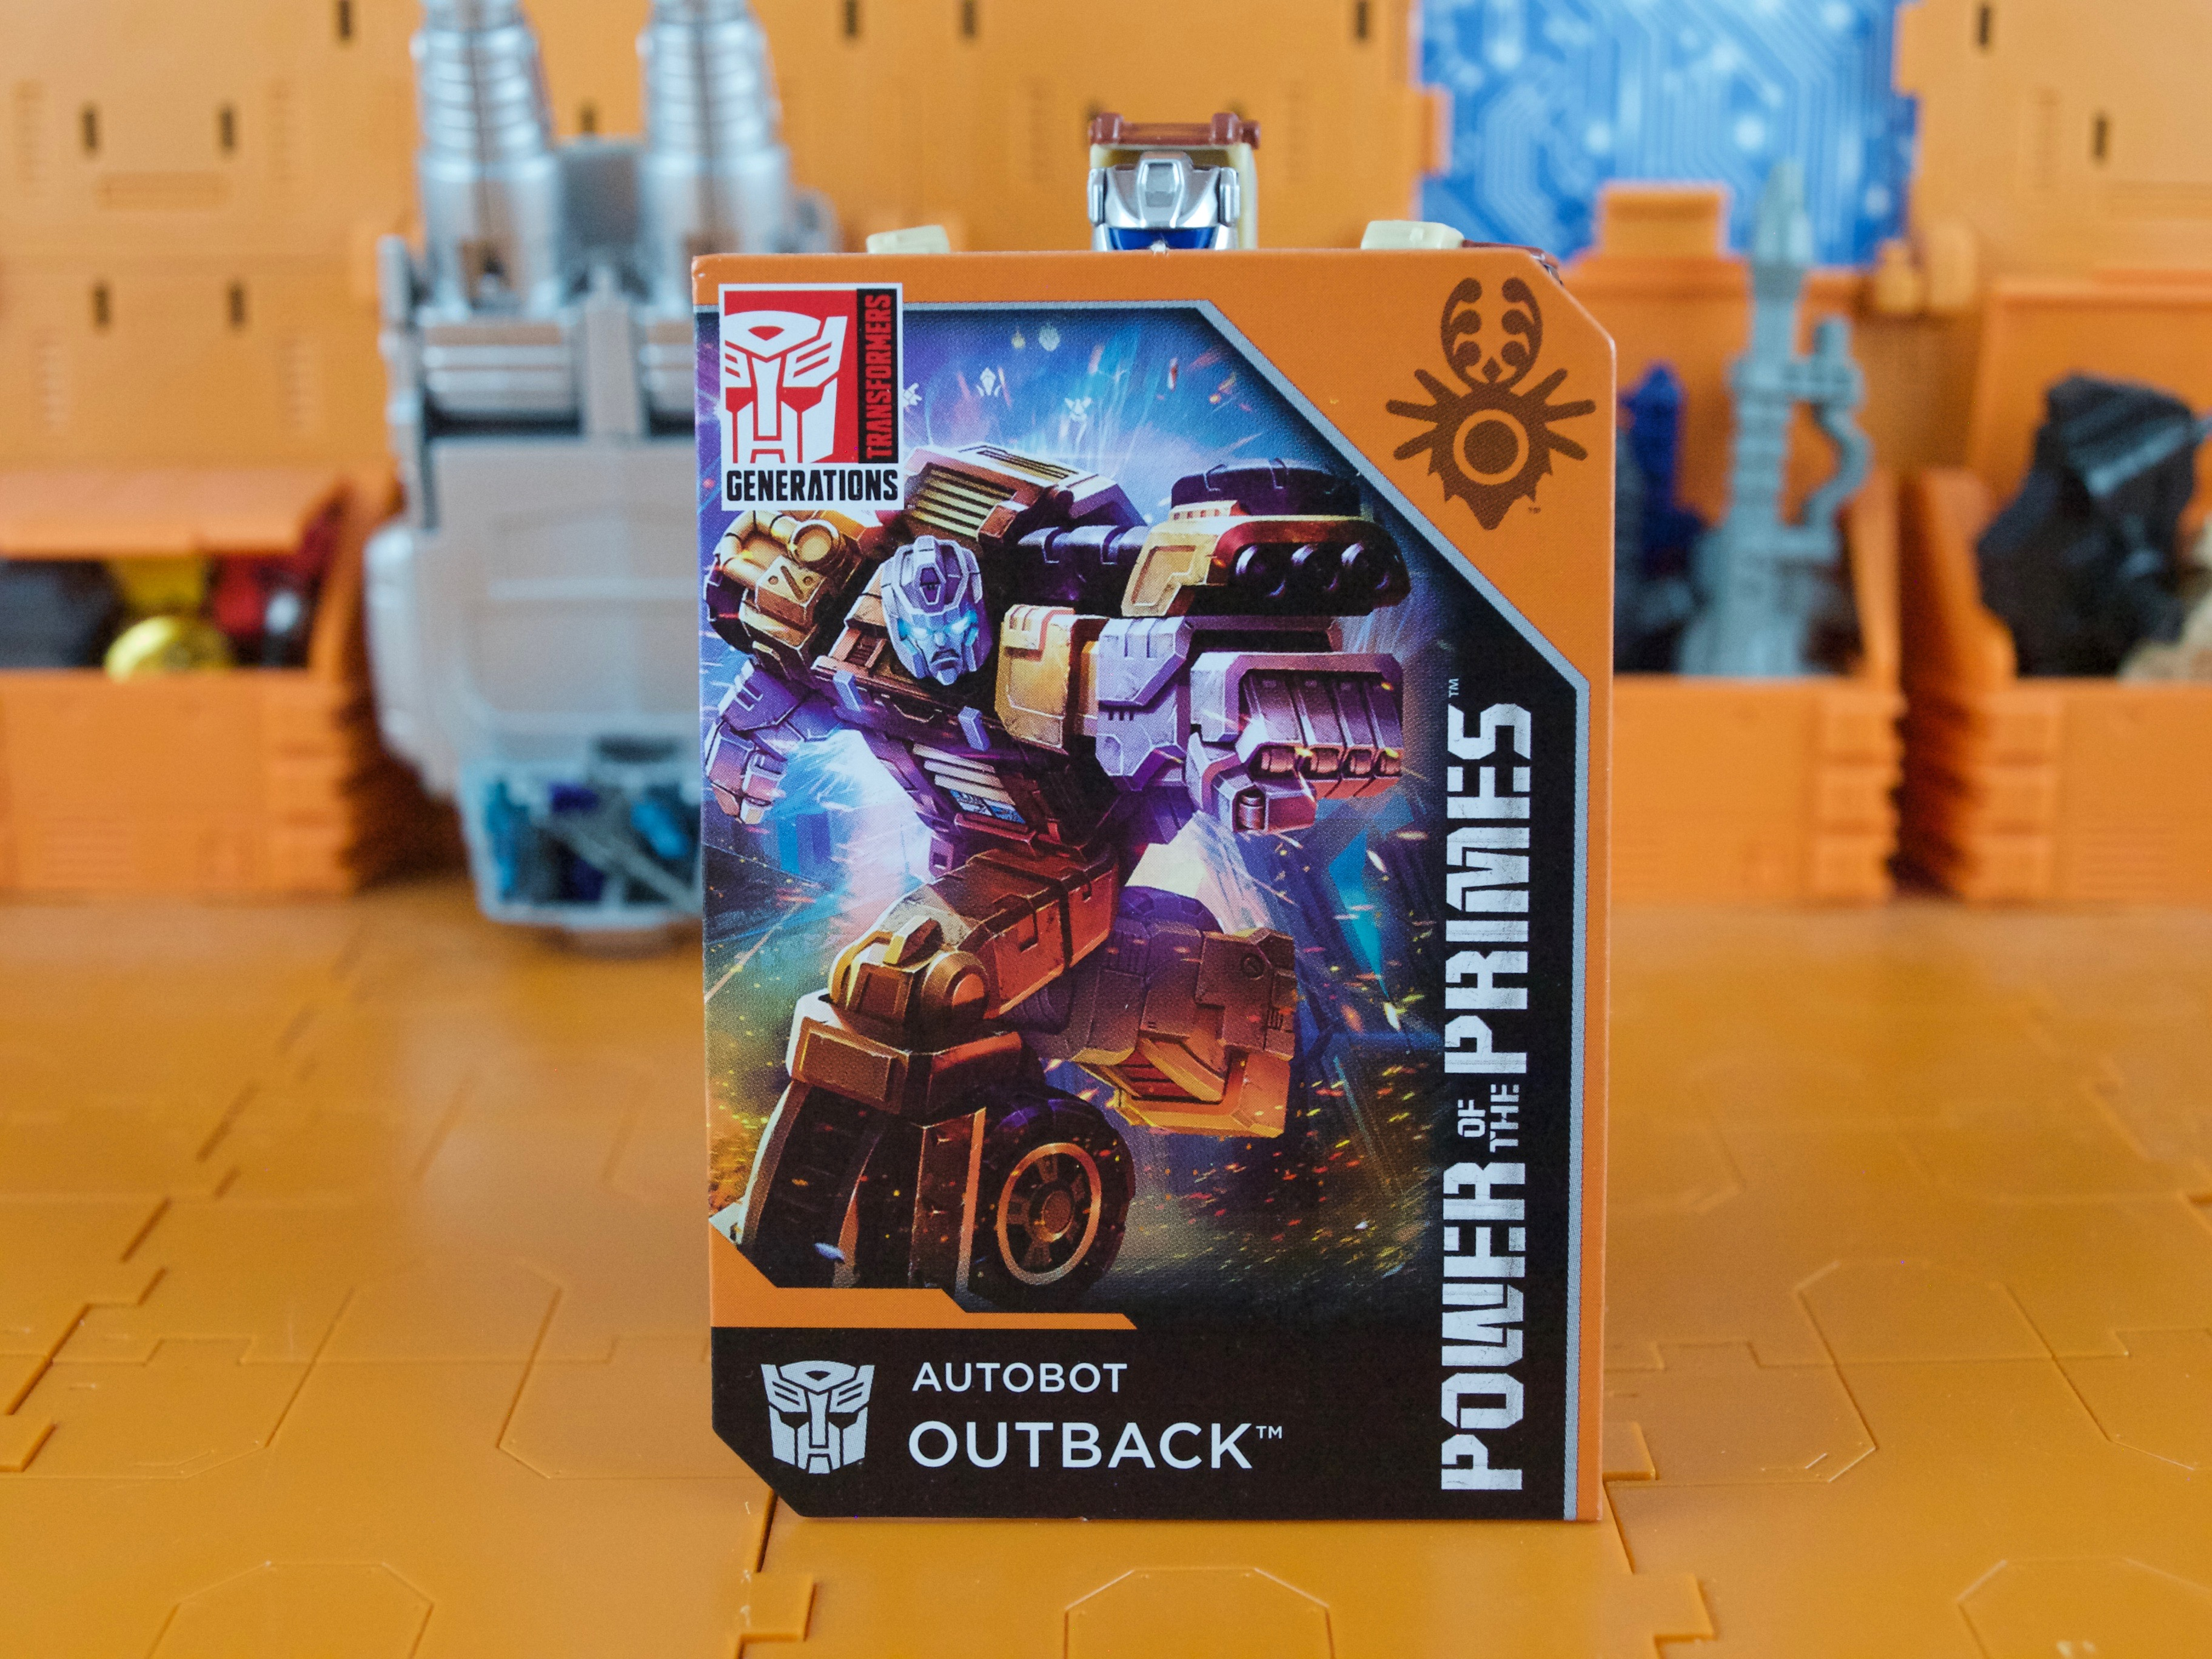 Outback card front